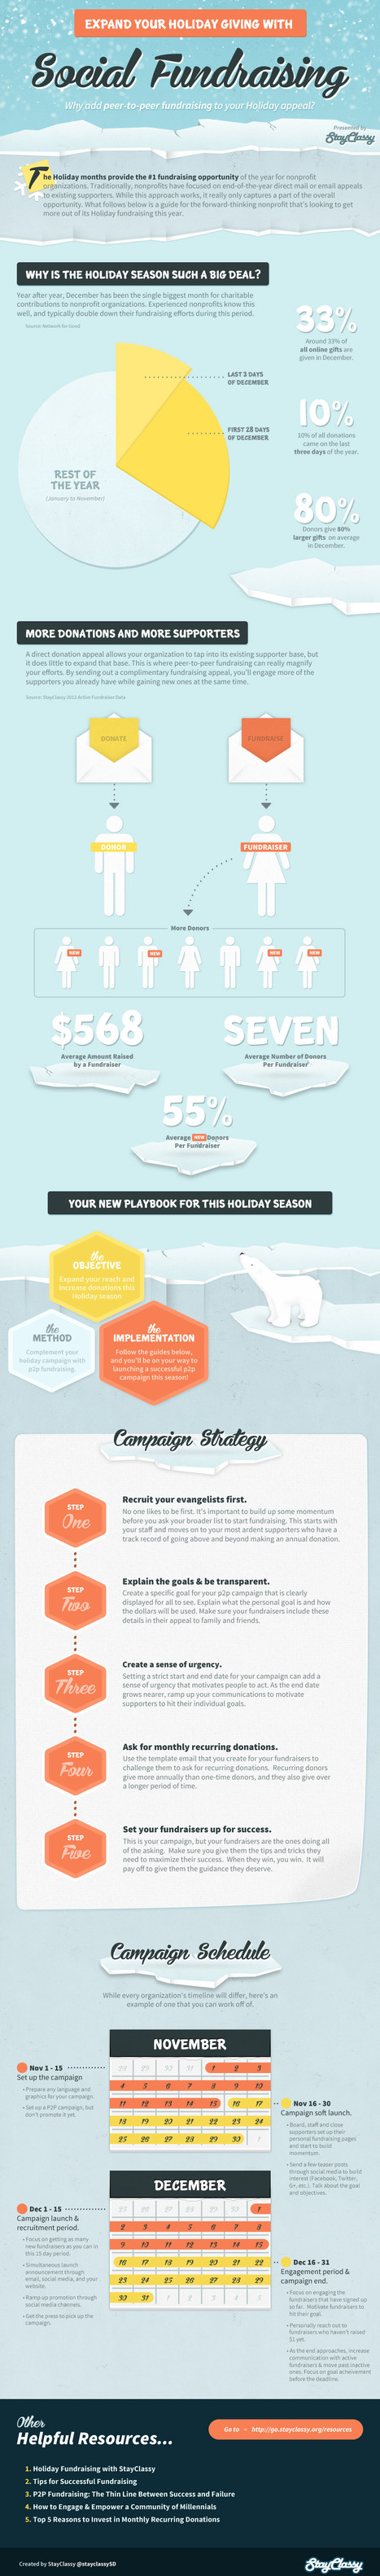 Fundraising playbook for this holiday season INFOGRAPHIC | CarolineColo | Scoop.it